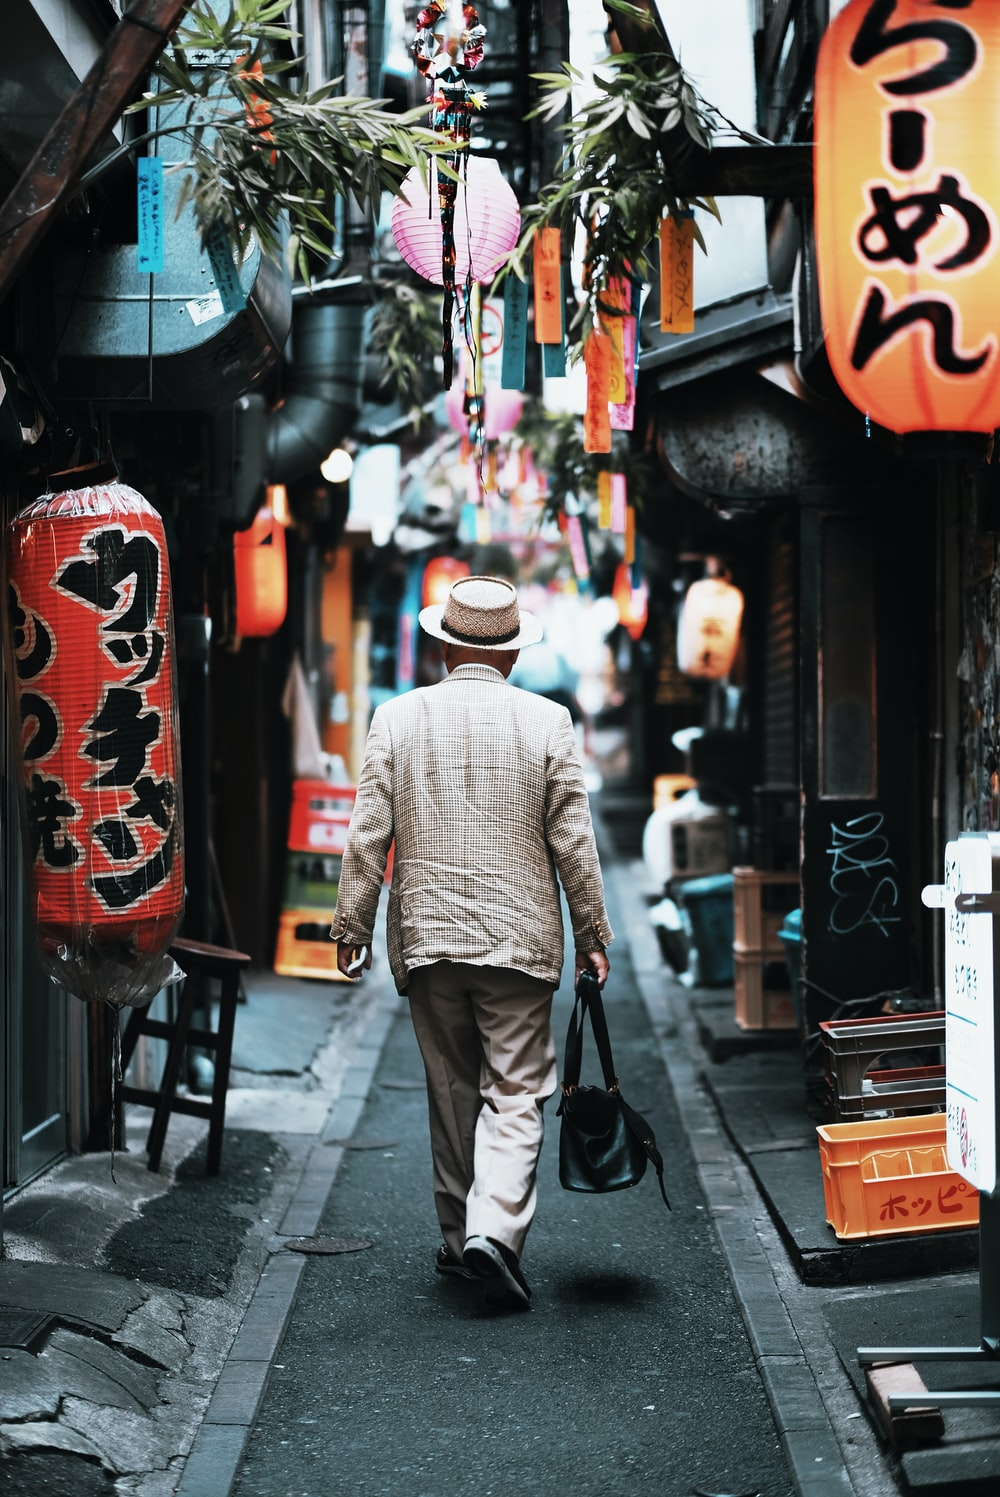 An elderly man in a suit in a narrow alley in Tokyo's Shinjuku district